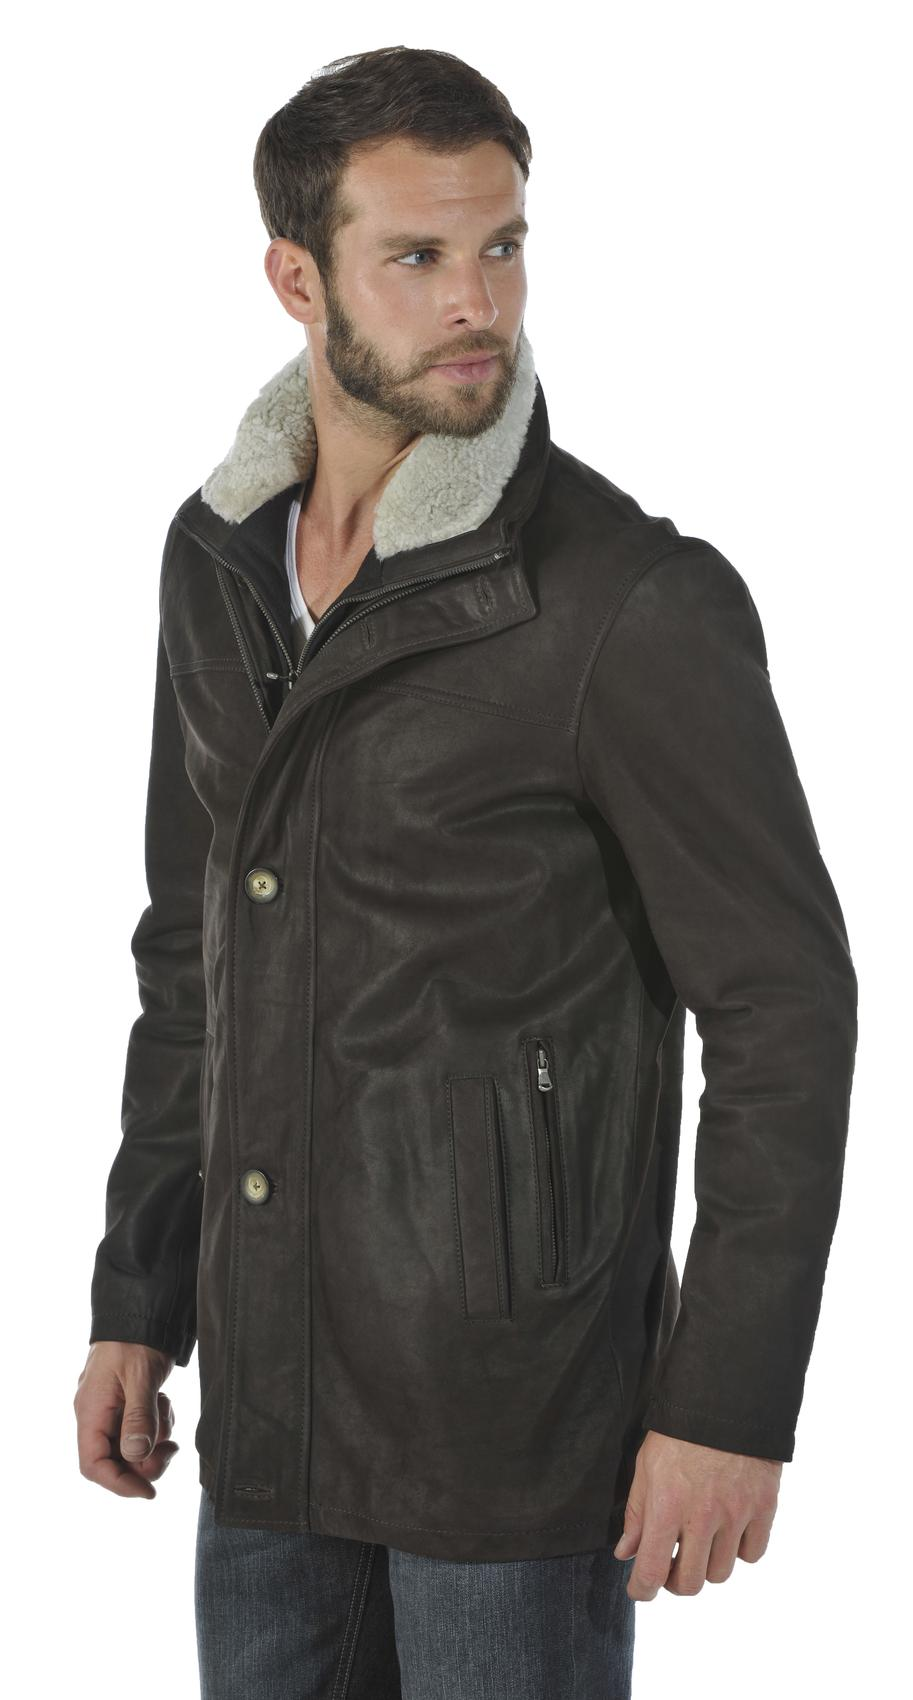 veste tyler timber biais